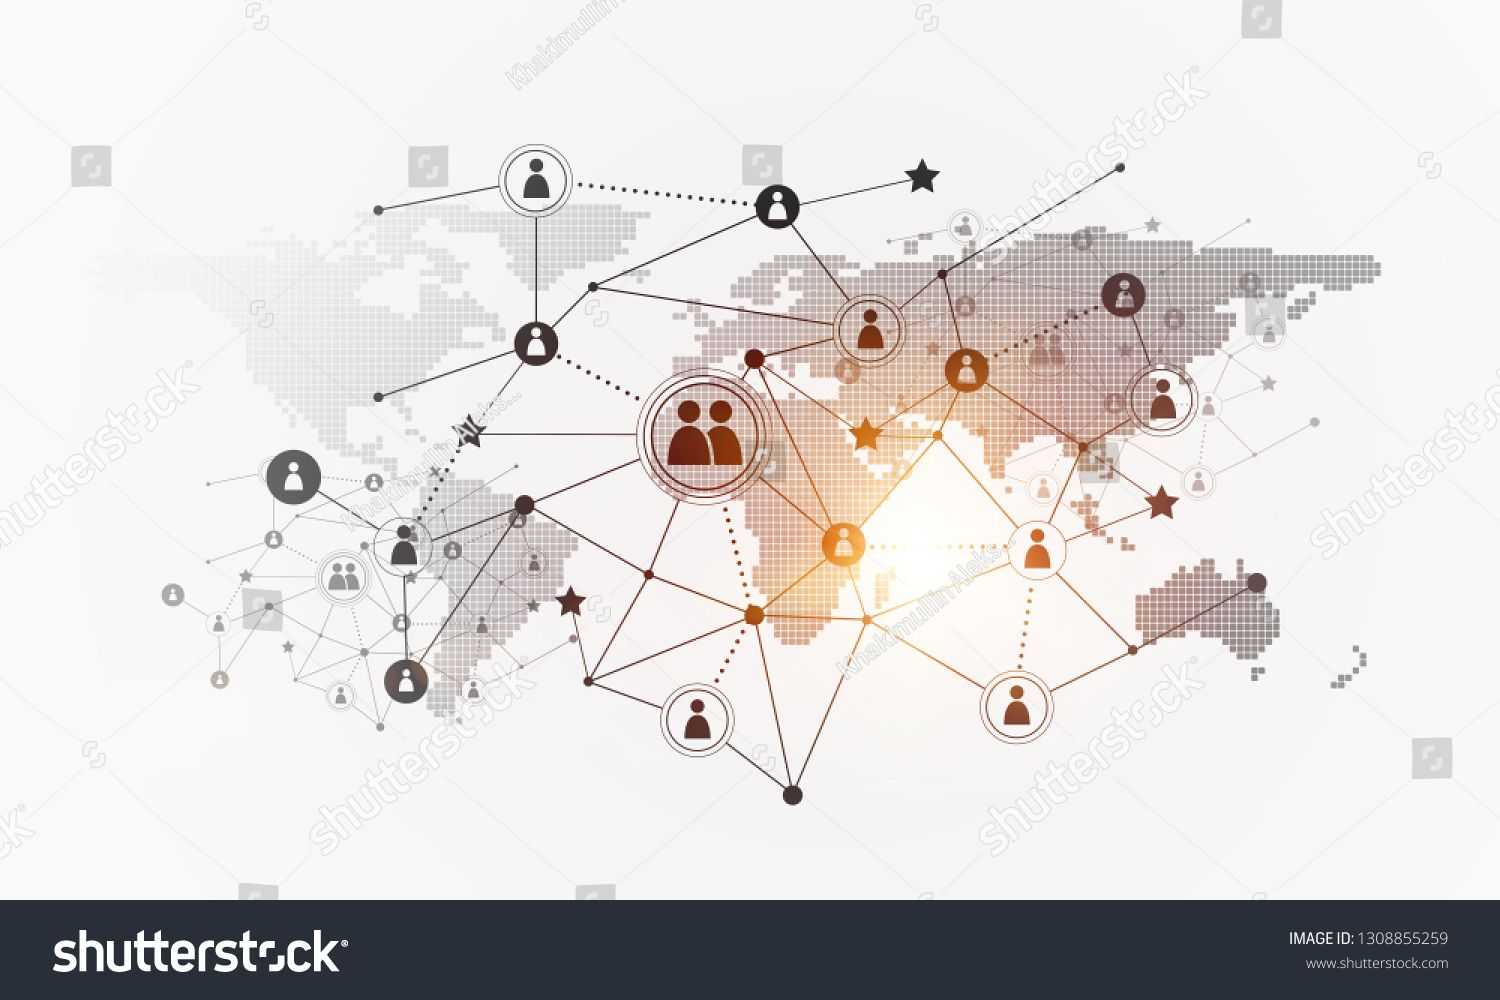 Background Image With Social Connection And Networking Concept On White Wall Ad Sponsored Social Connecti In 2020 White Walls Snapchat Template Background Images